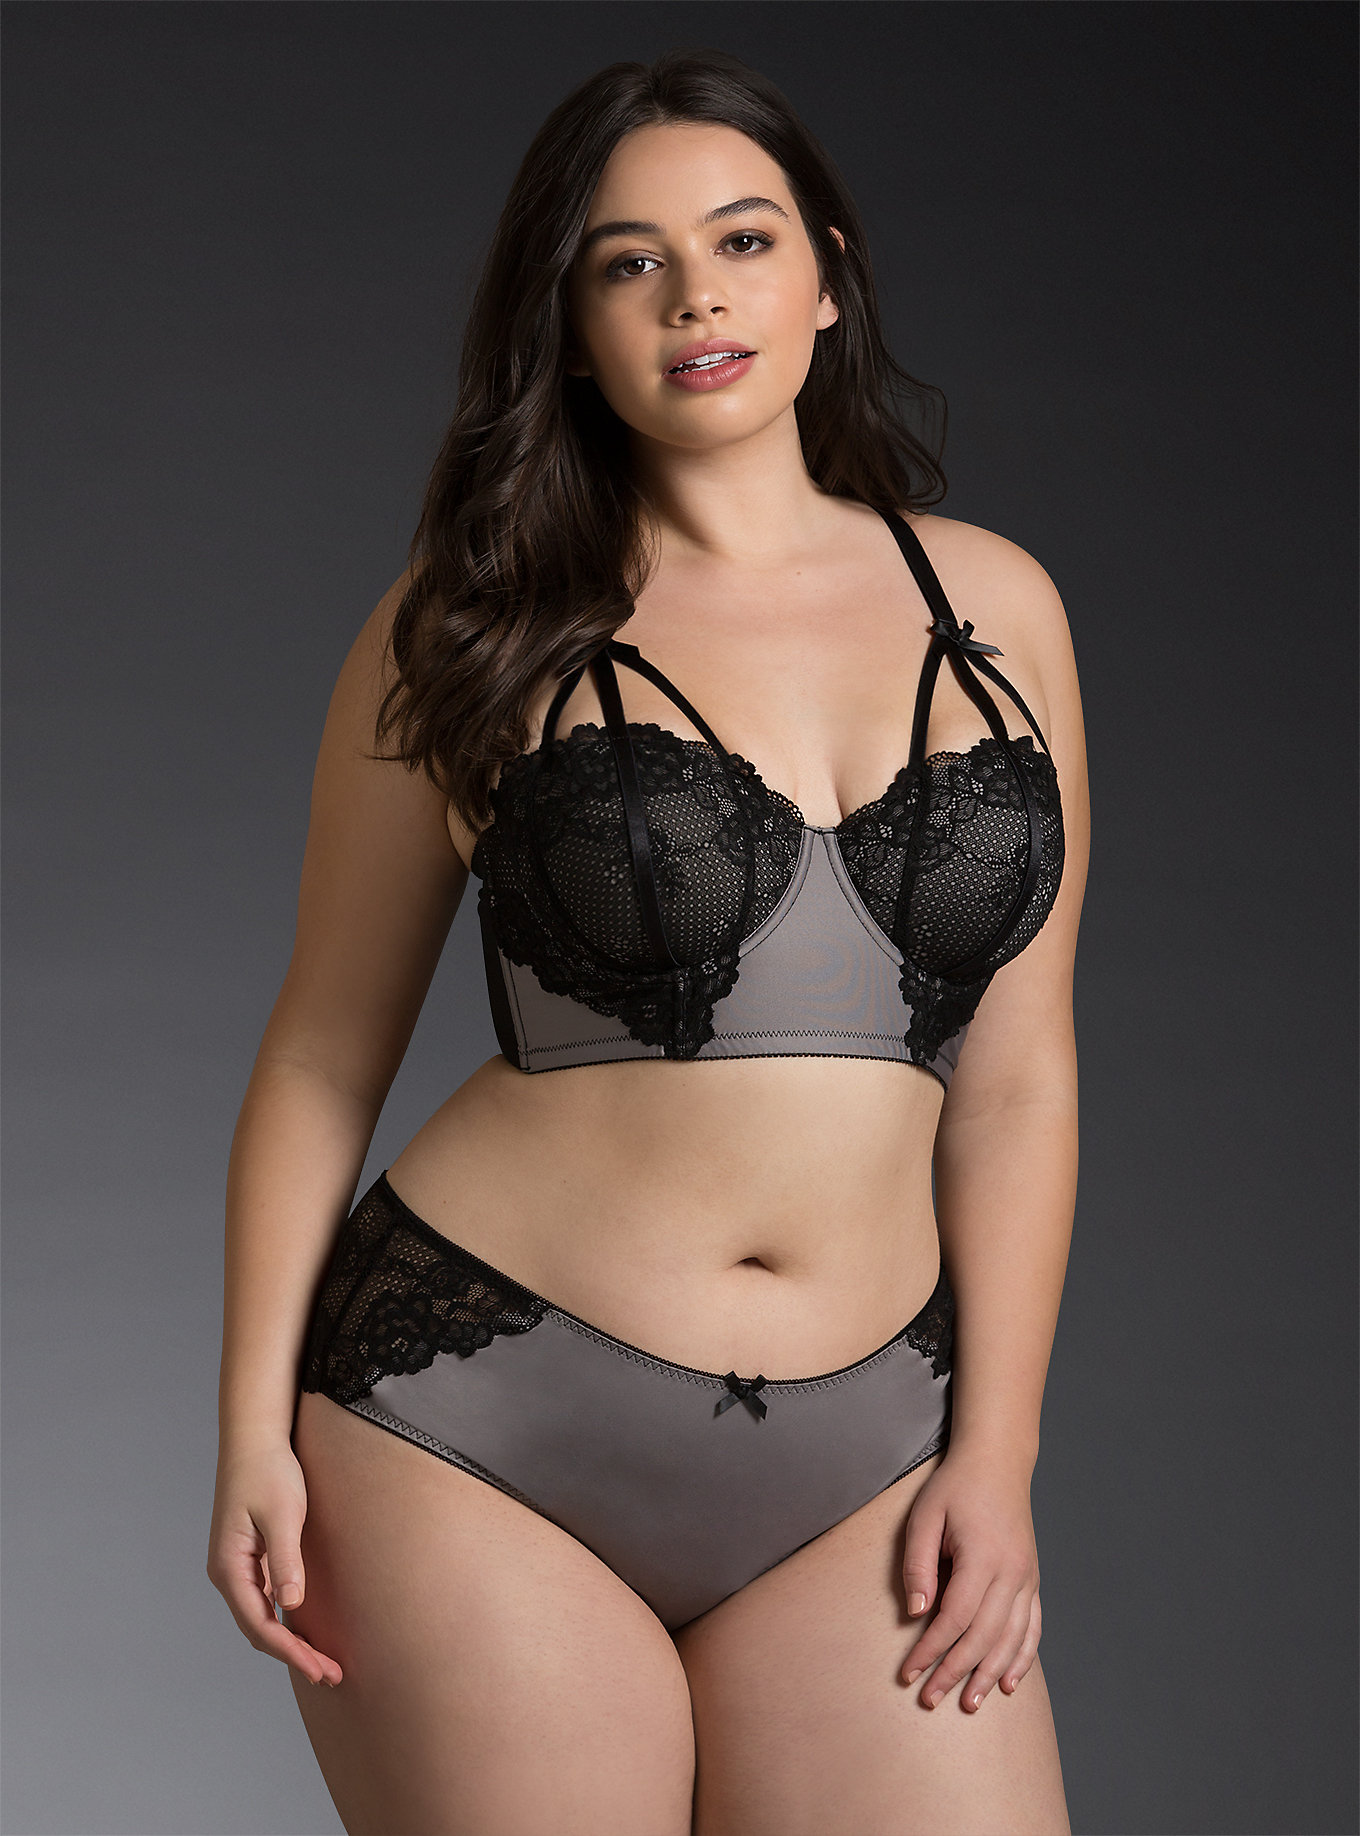 5 Torrid Strappy Lace Long Line Bra And Panty